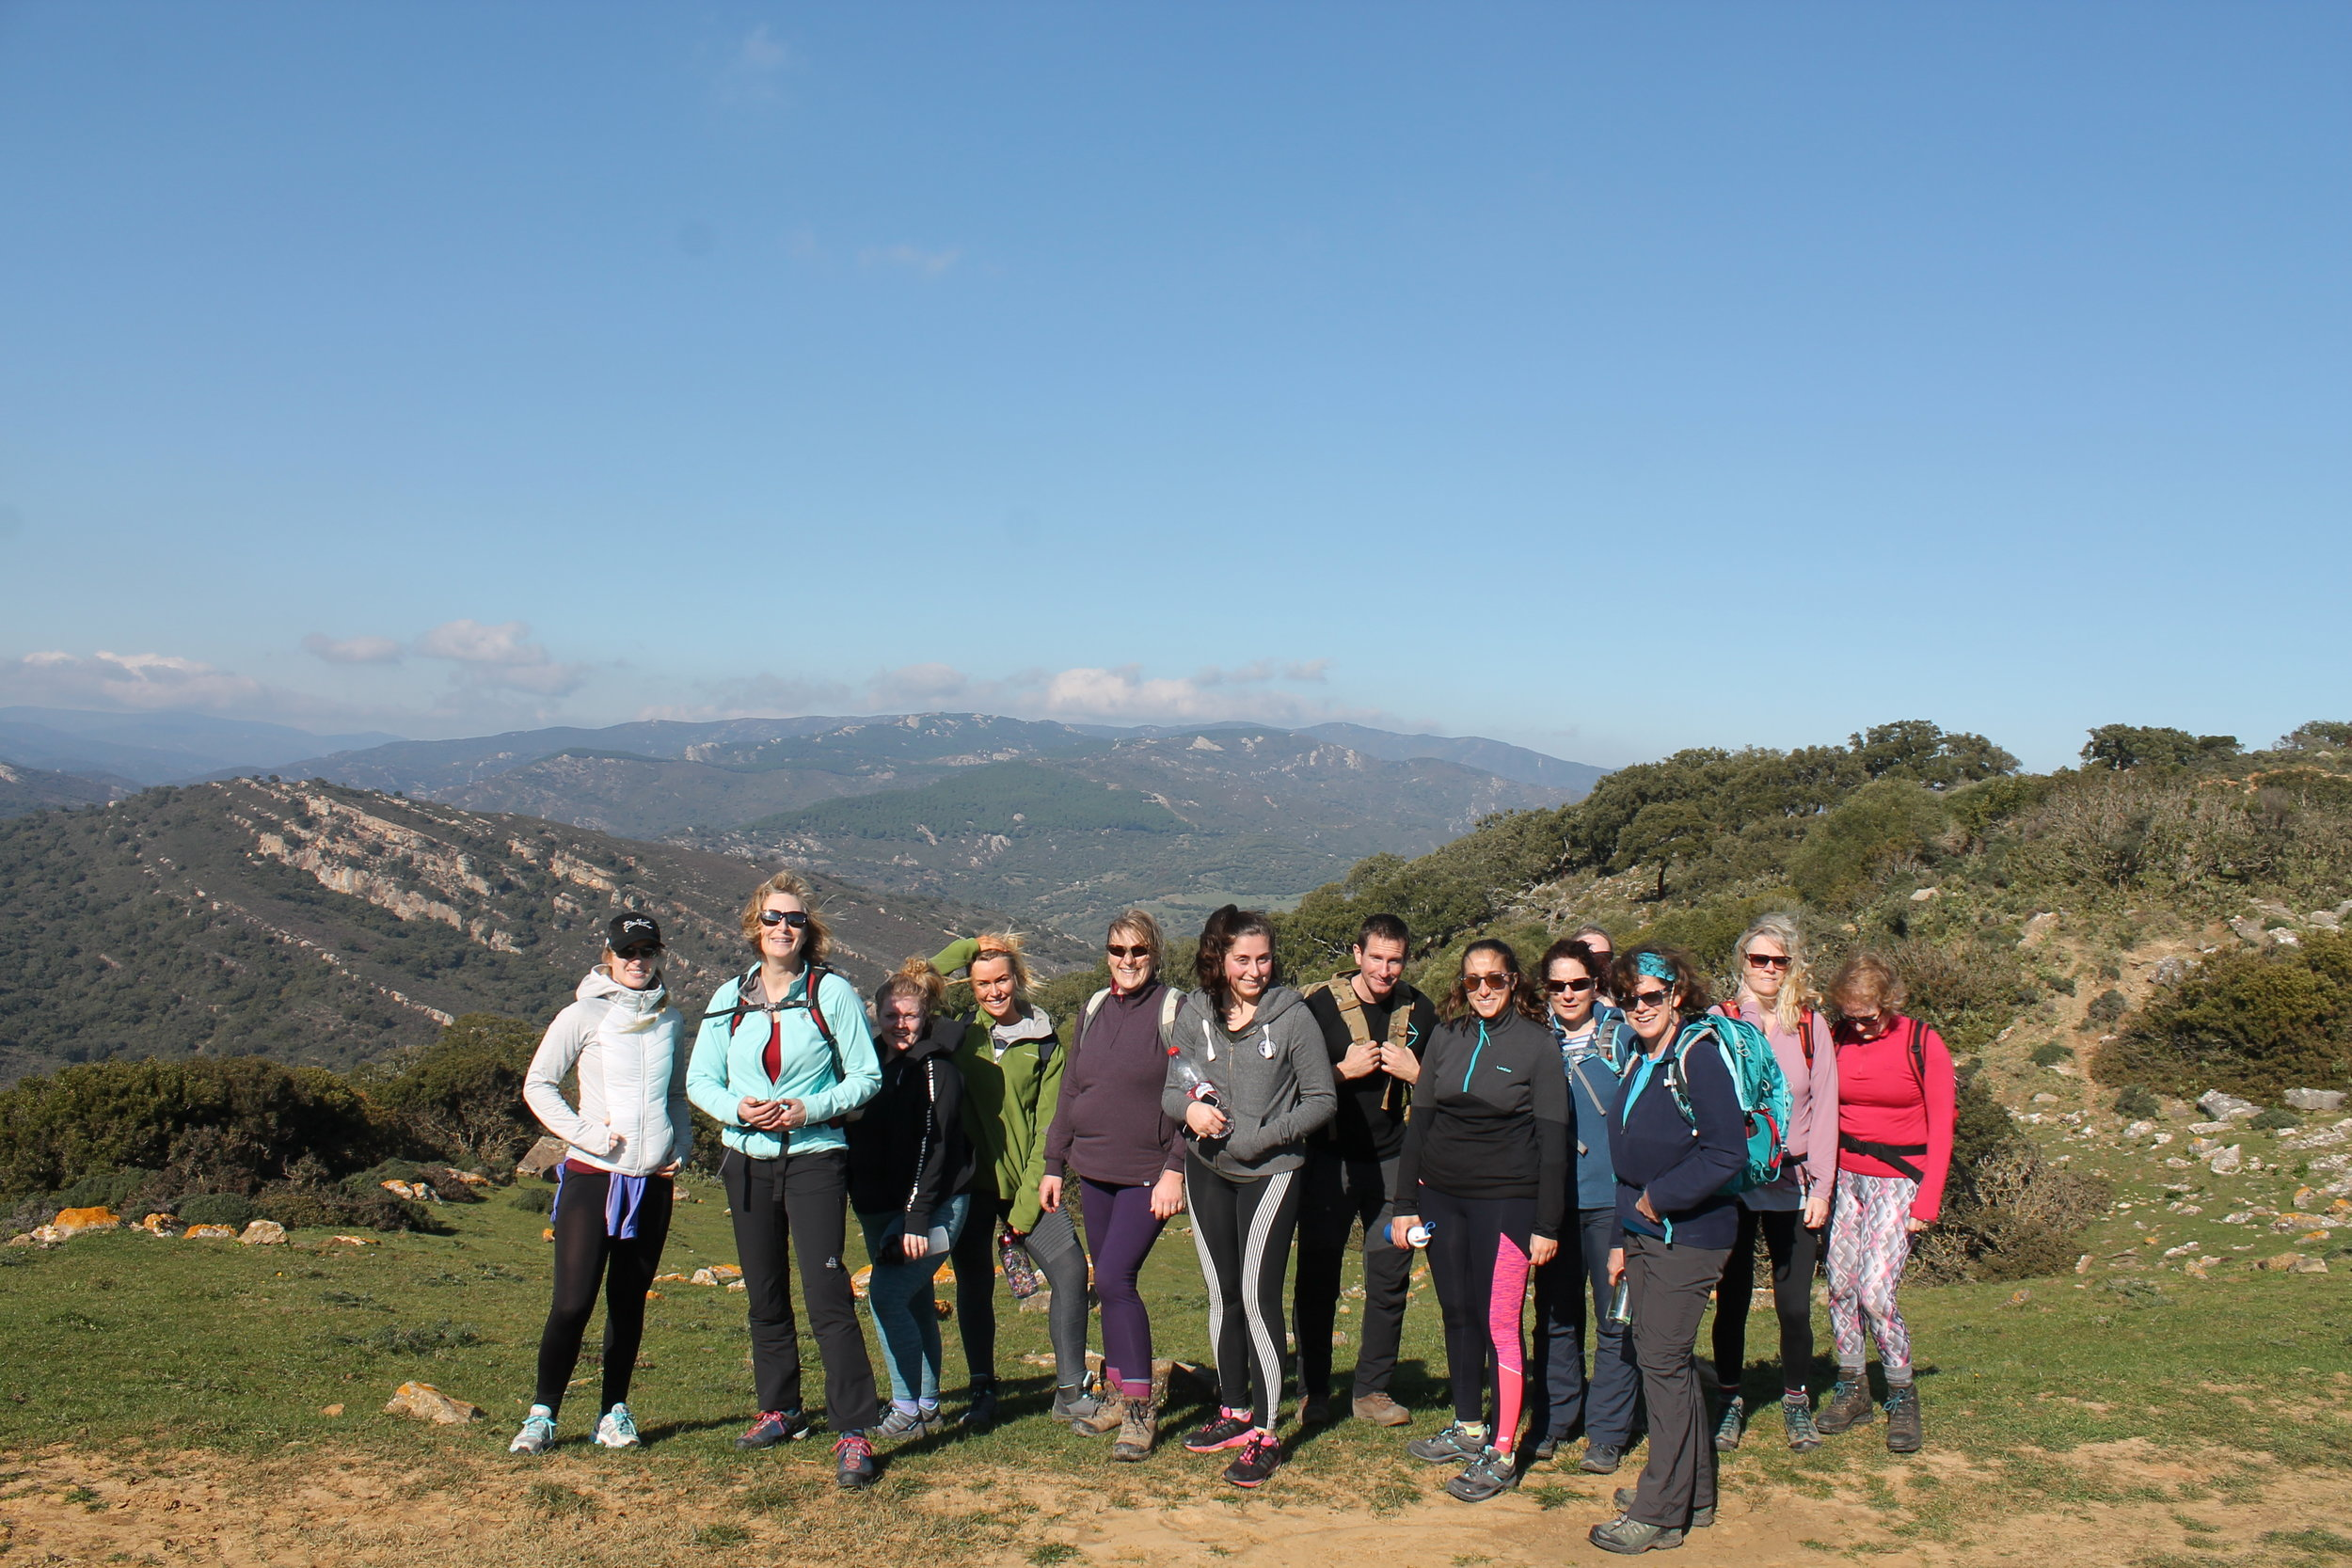 Hiking in the national park - a great fat burning activity on the Who Dares Slims Boot Camp